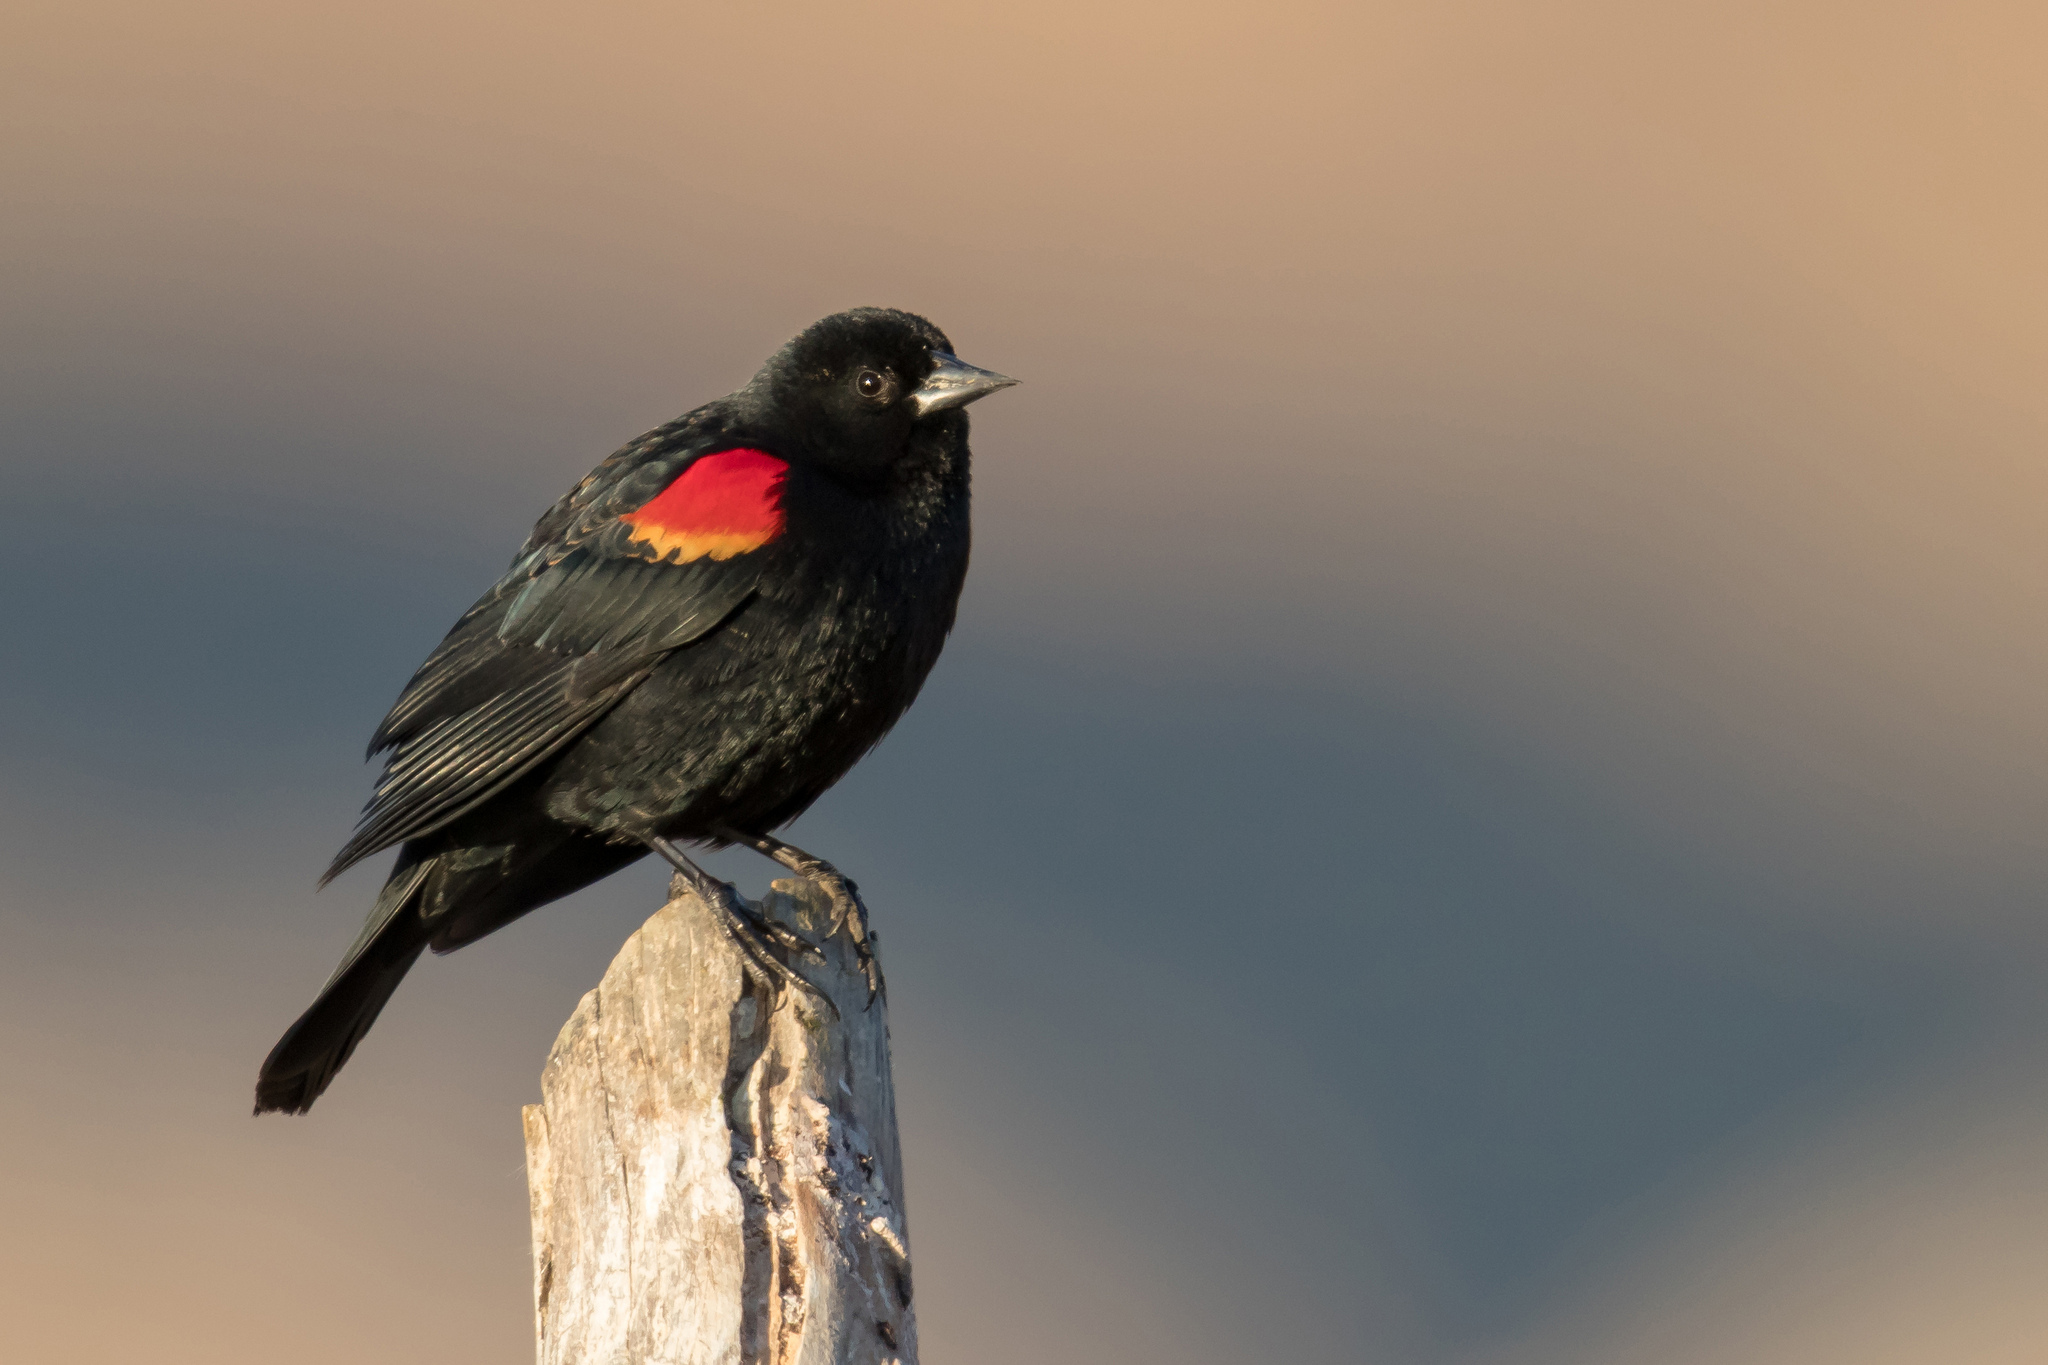 Red-winged Blackbird by Mick Thompson